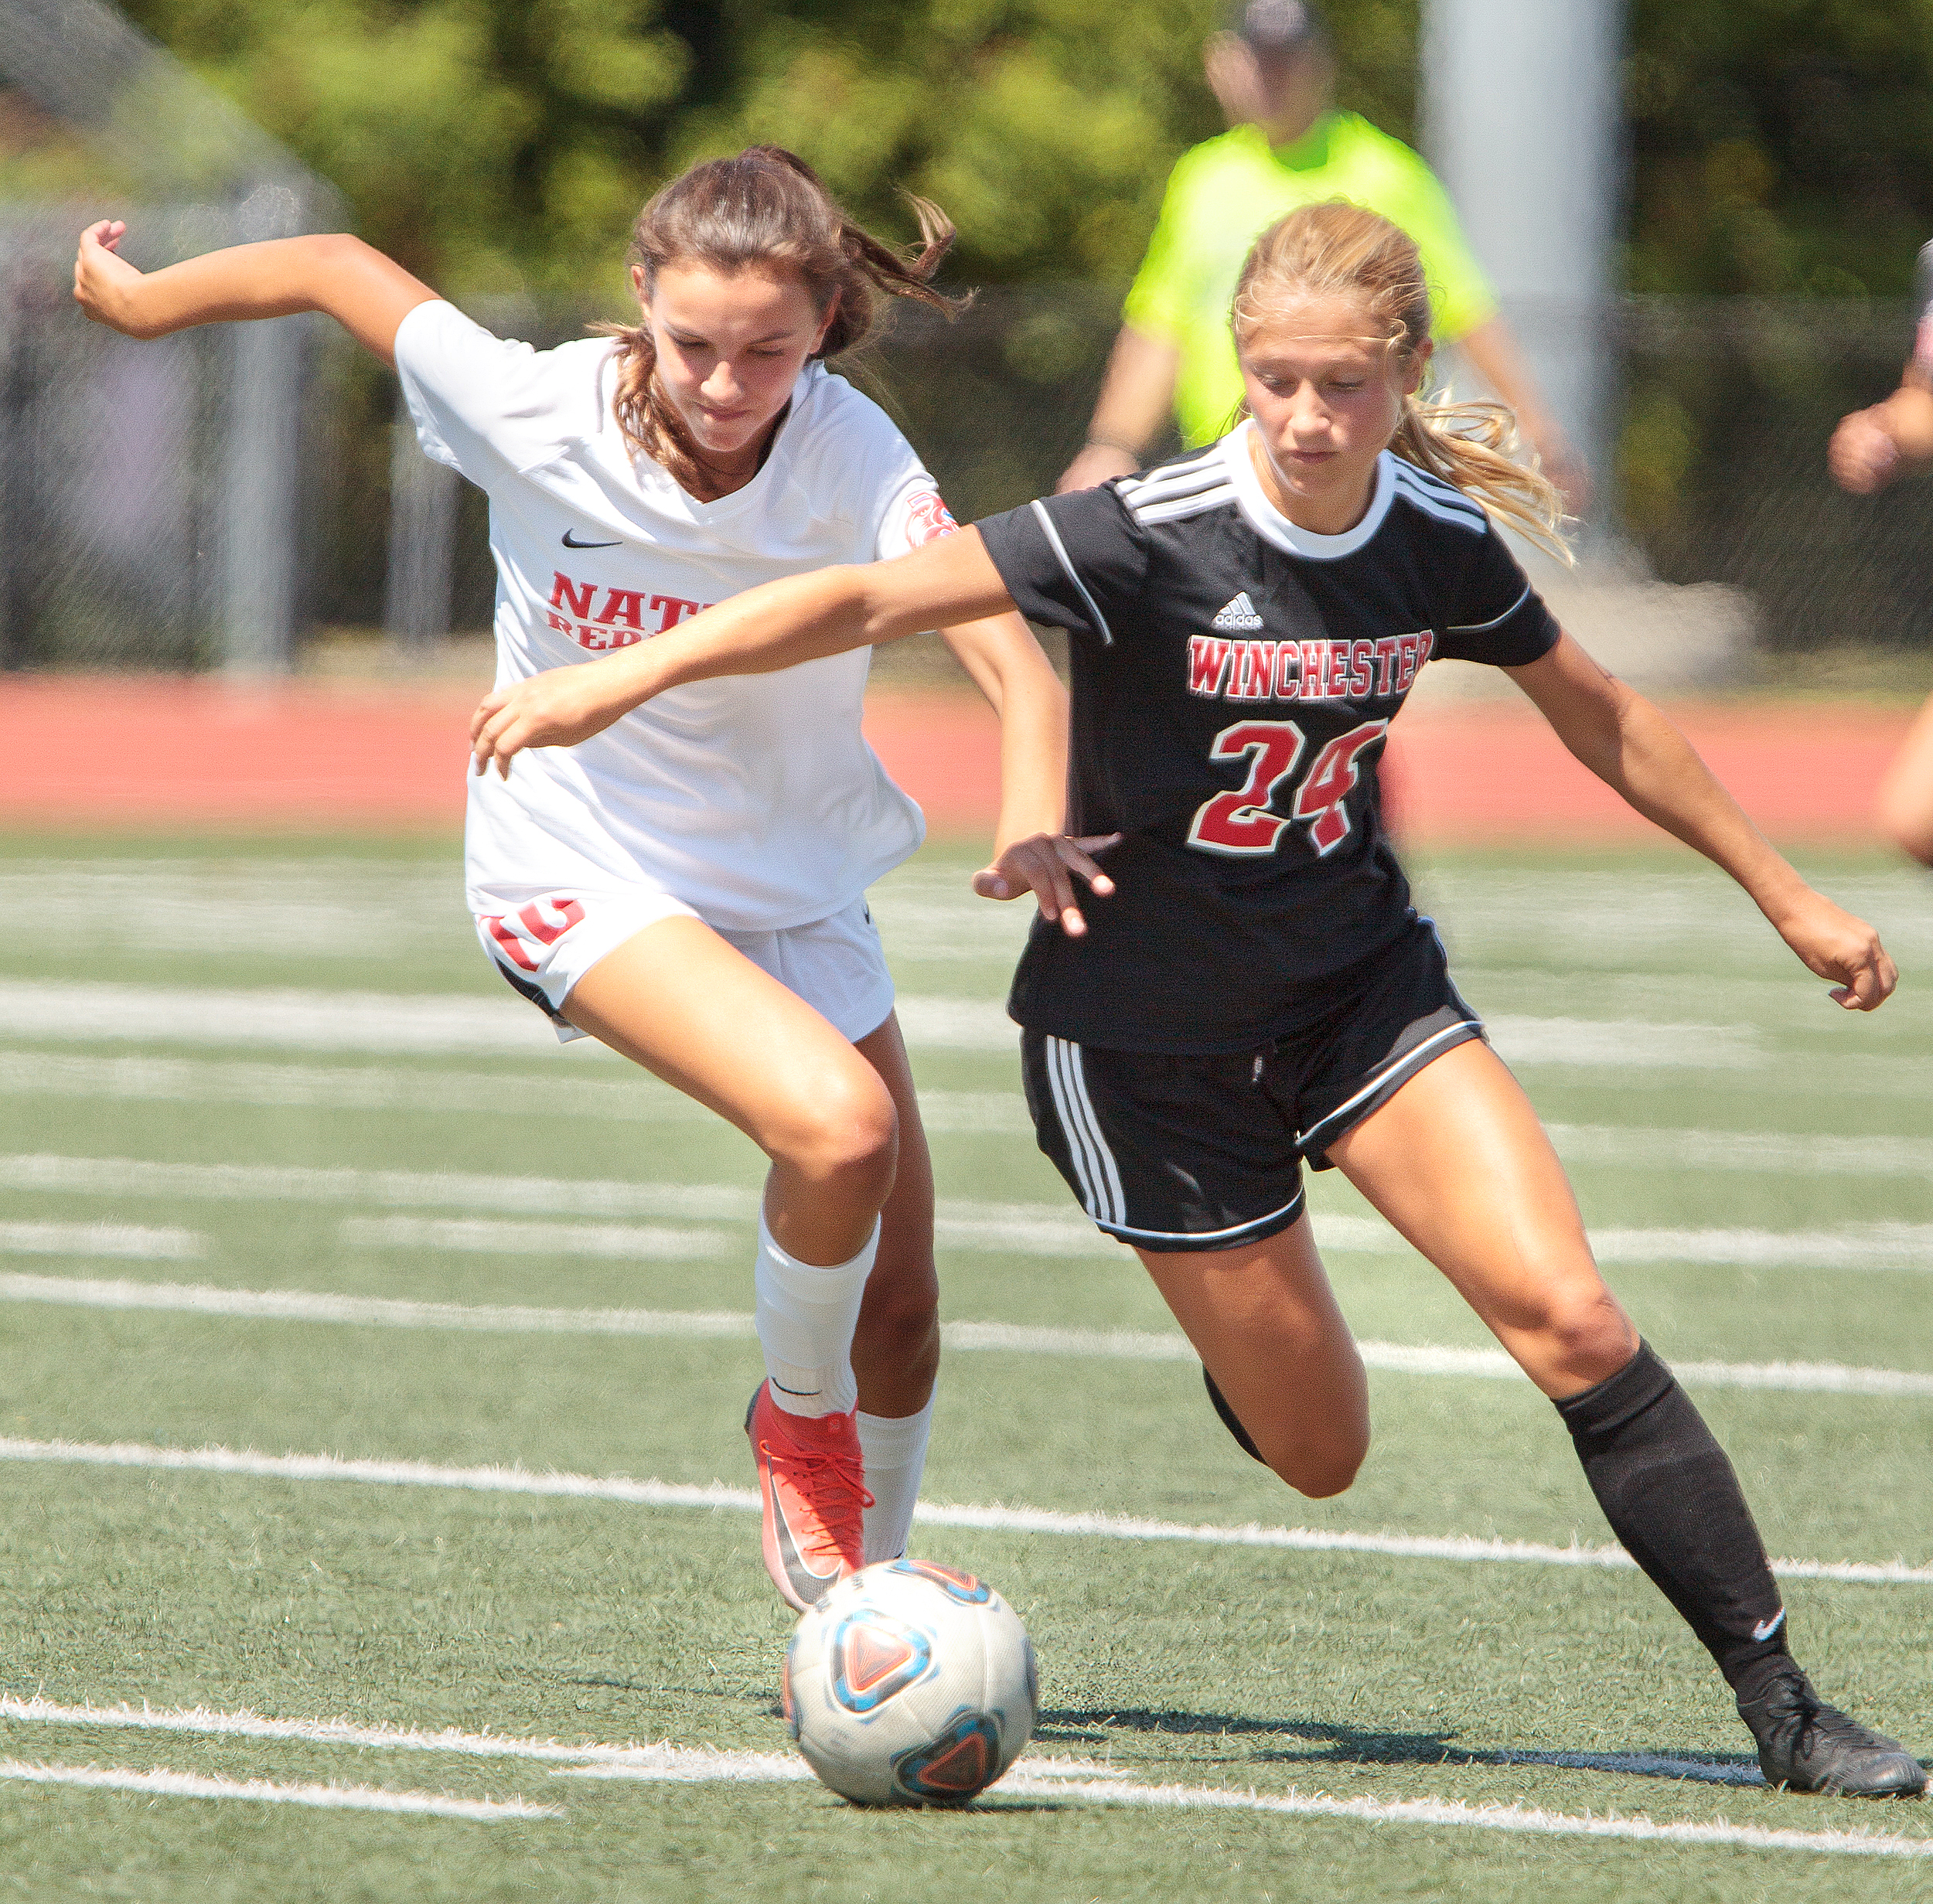 Emass Girls Soccer Preview Players To Watch The Boston Globe